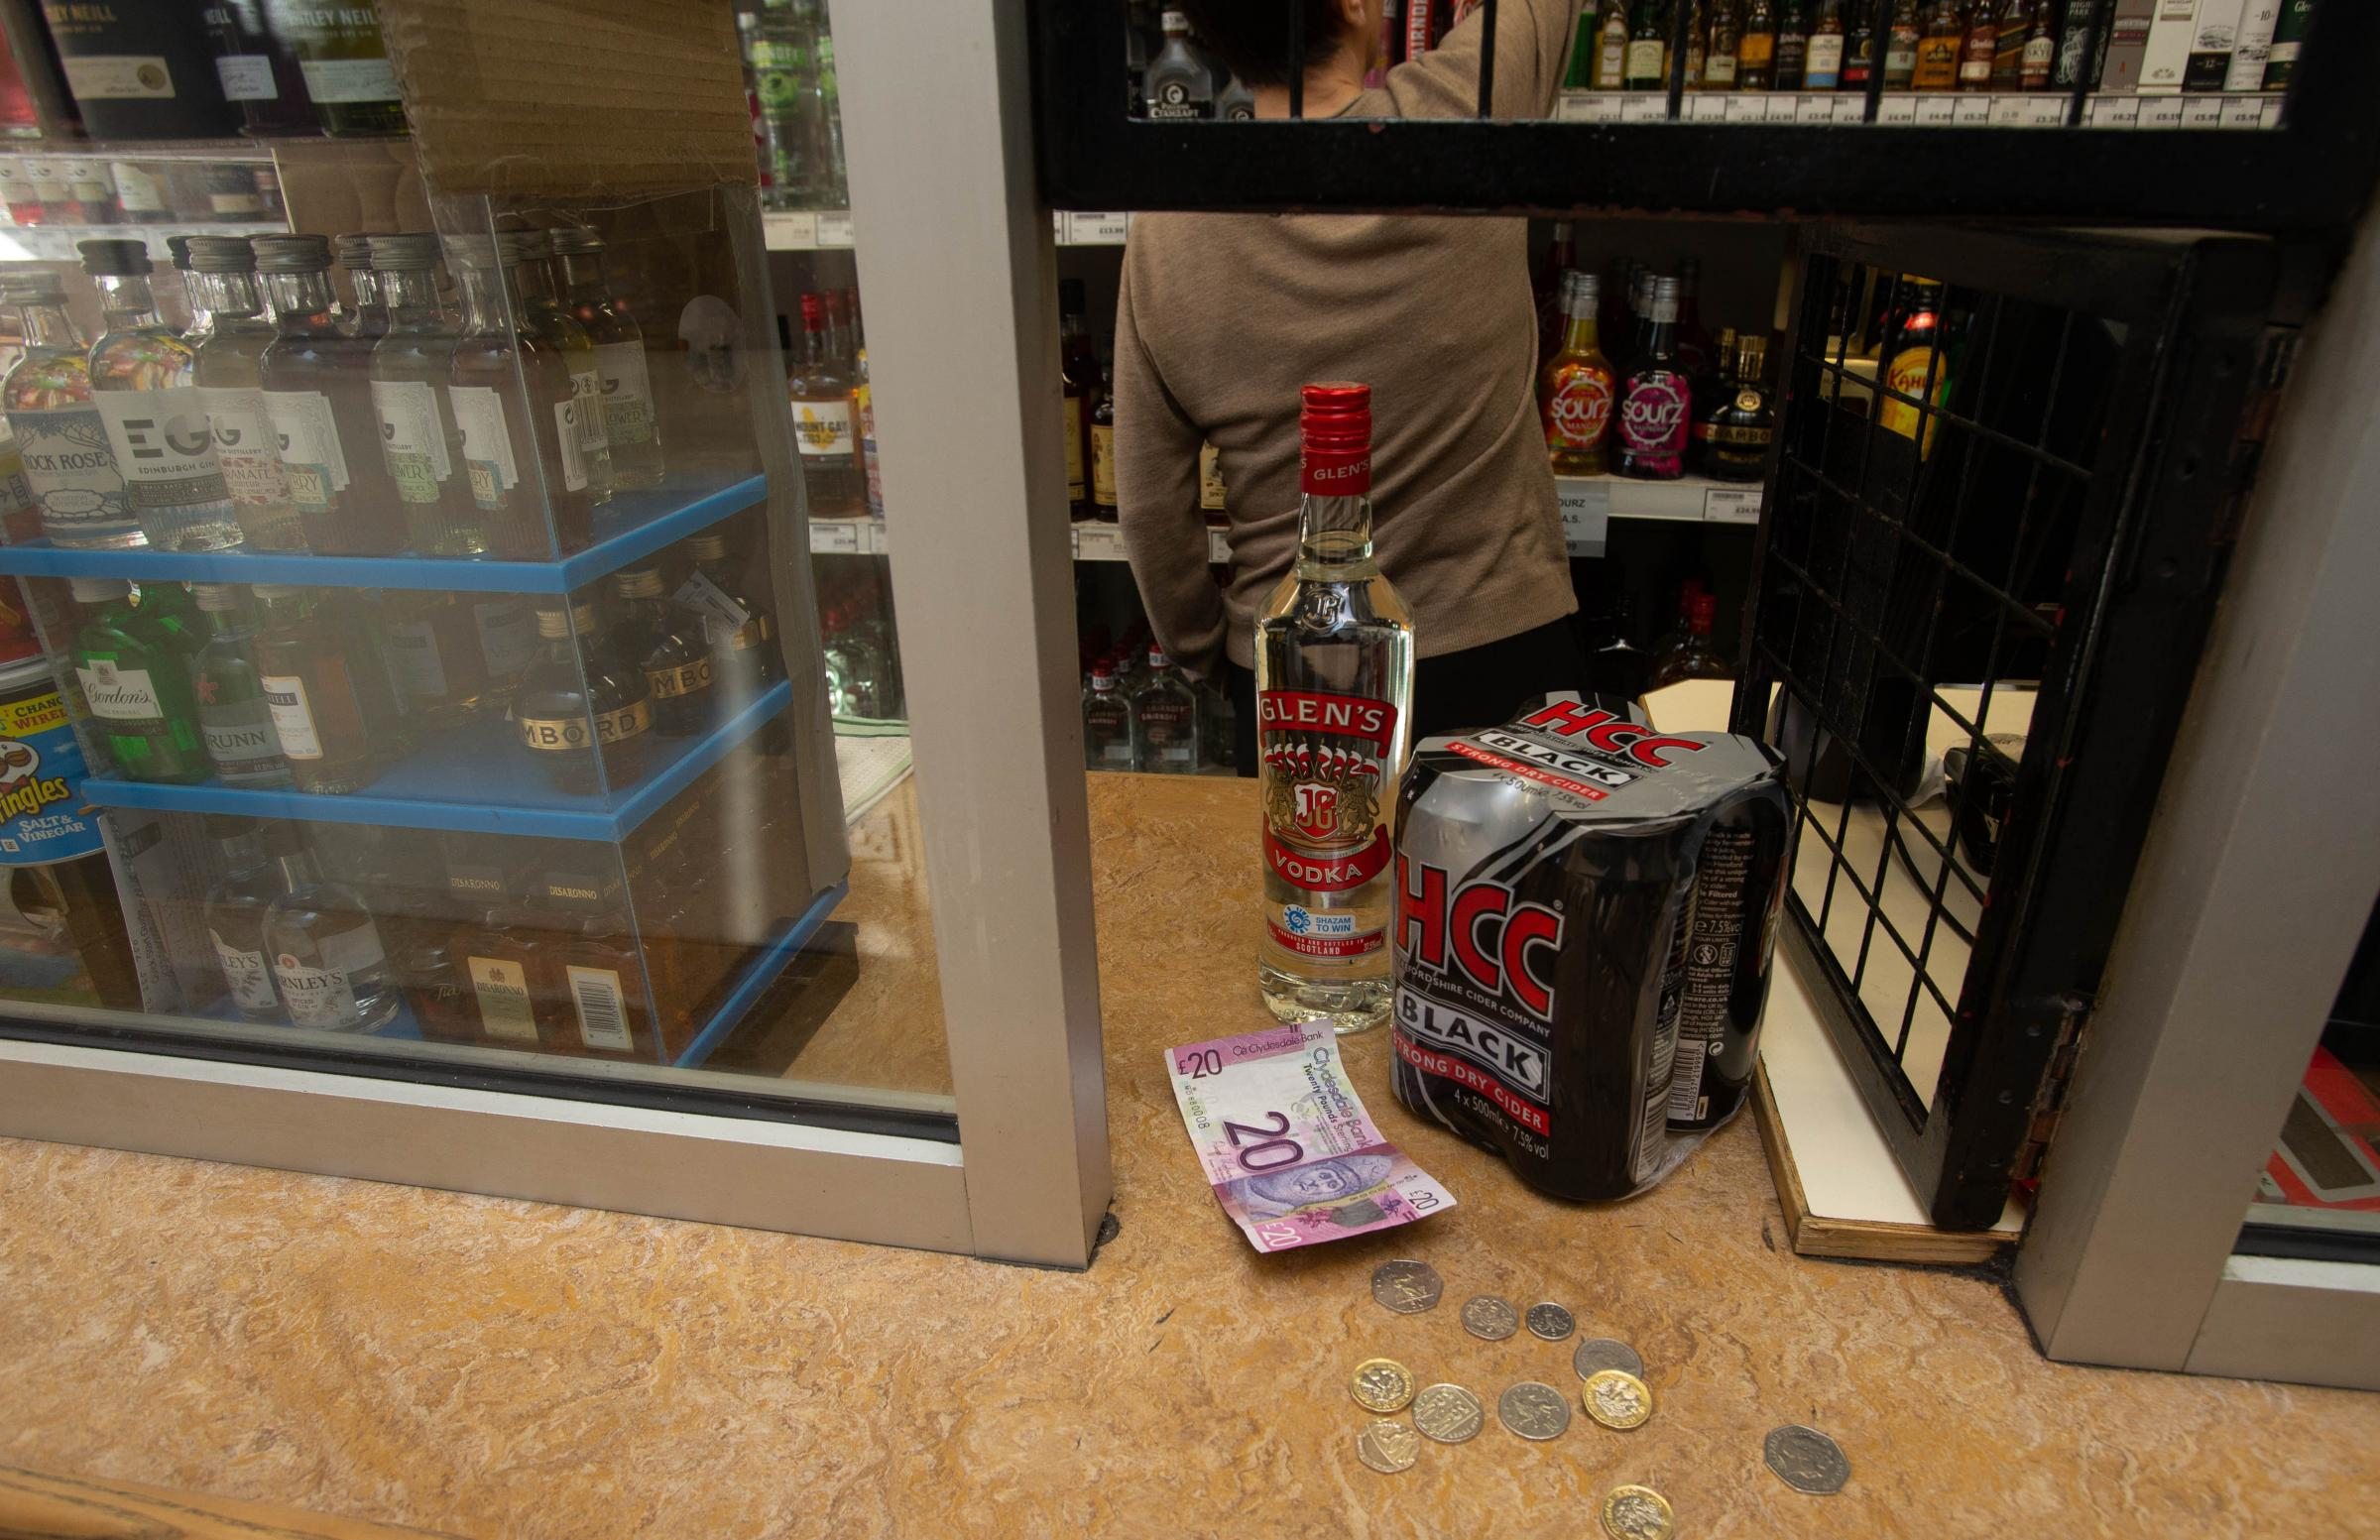 Minimum alcohol pricing: Scotland's elite have their priorities all wrong | The National